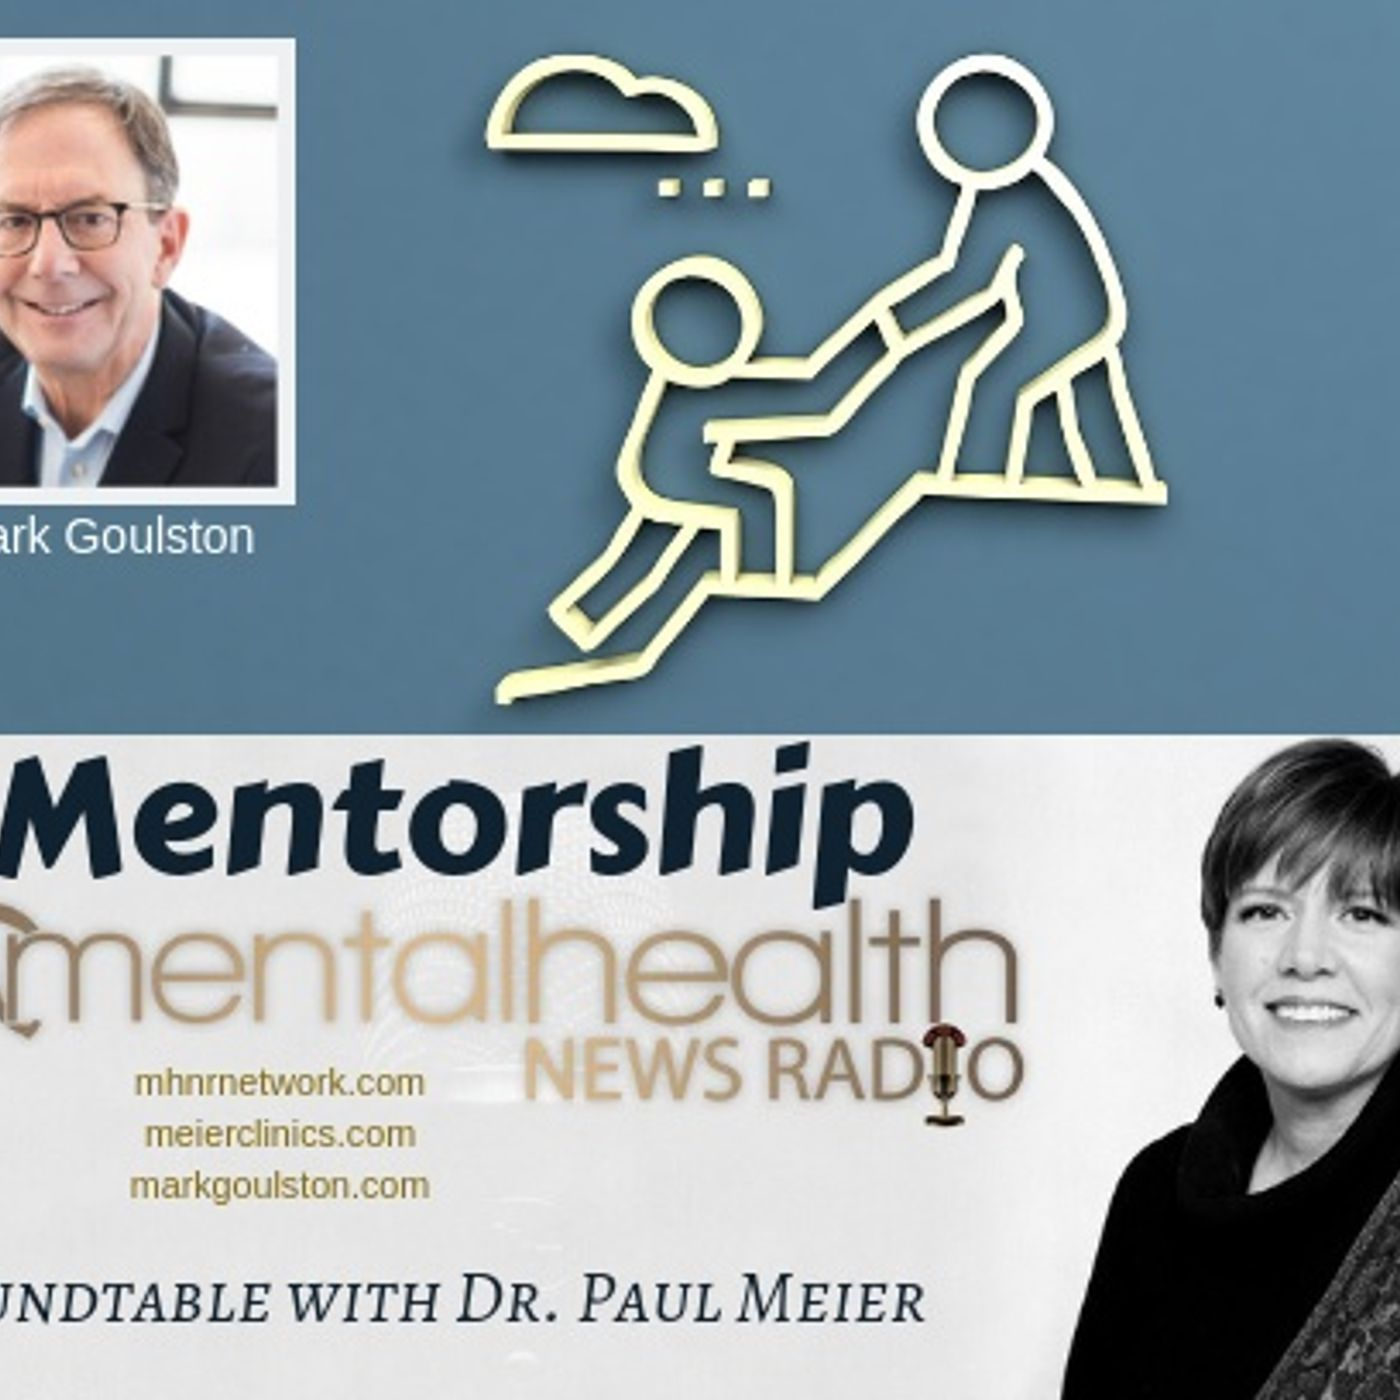 Mental Health News Radio - Roundtable with Dr. Paul Meier and Dr. Mark Goulston: Mentorship